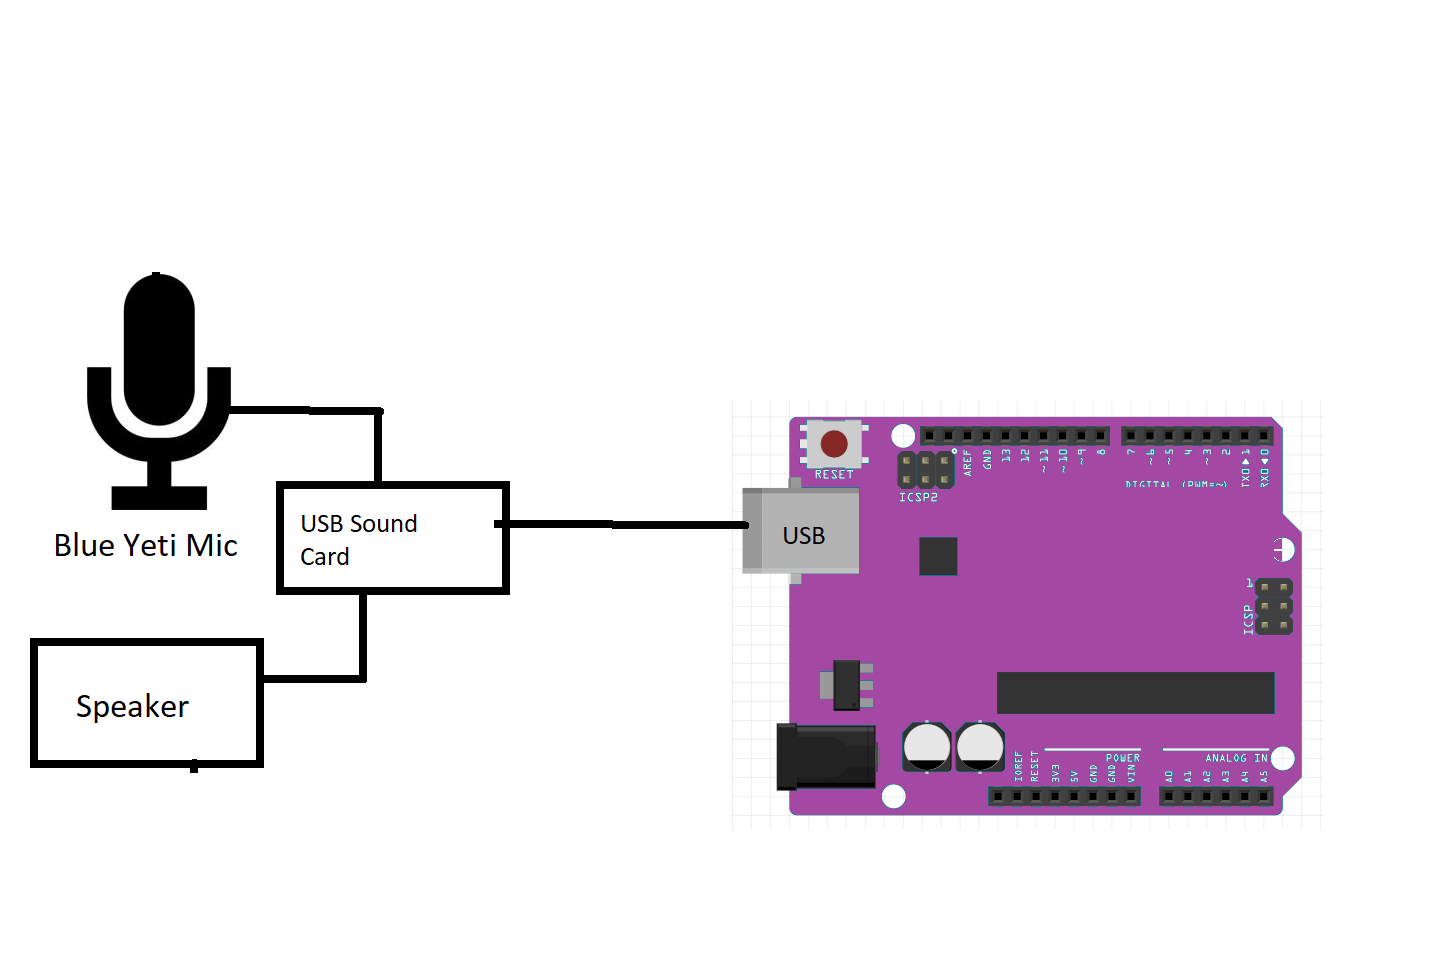 Usb Sound Card Wiring Diagram Explained Diagrams Denley Bruck Pin Of Receptacles Onion Assistant Hackster Io Cable